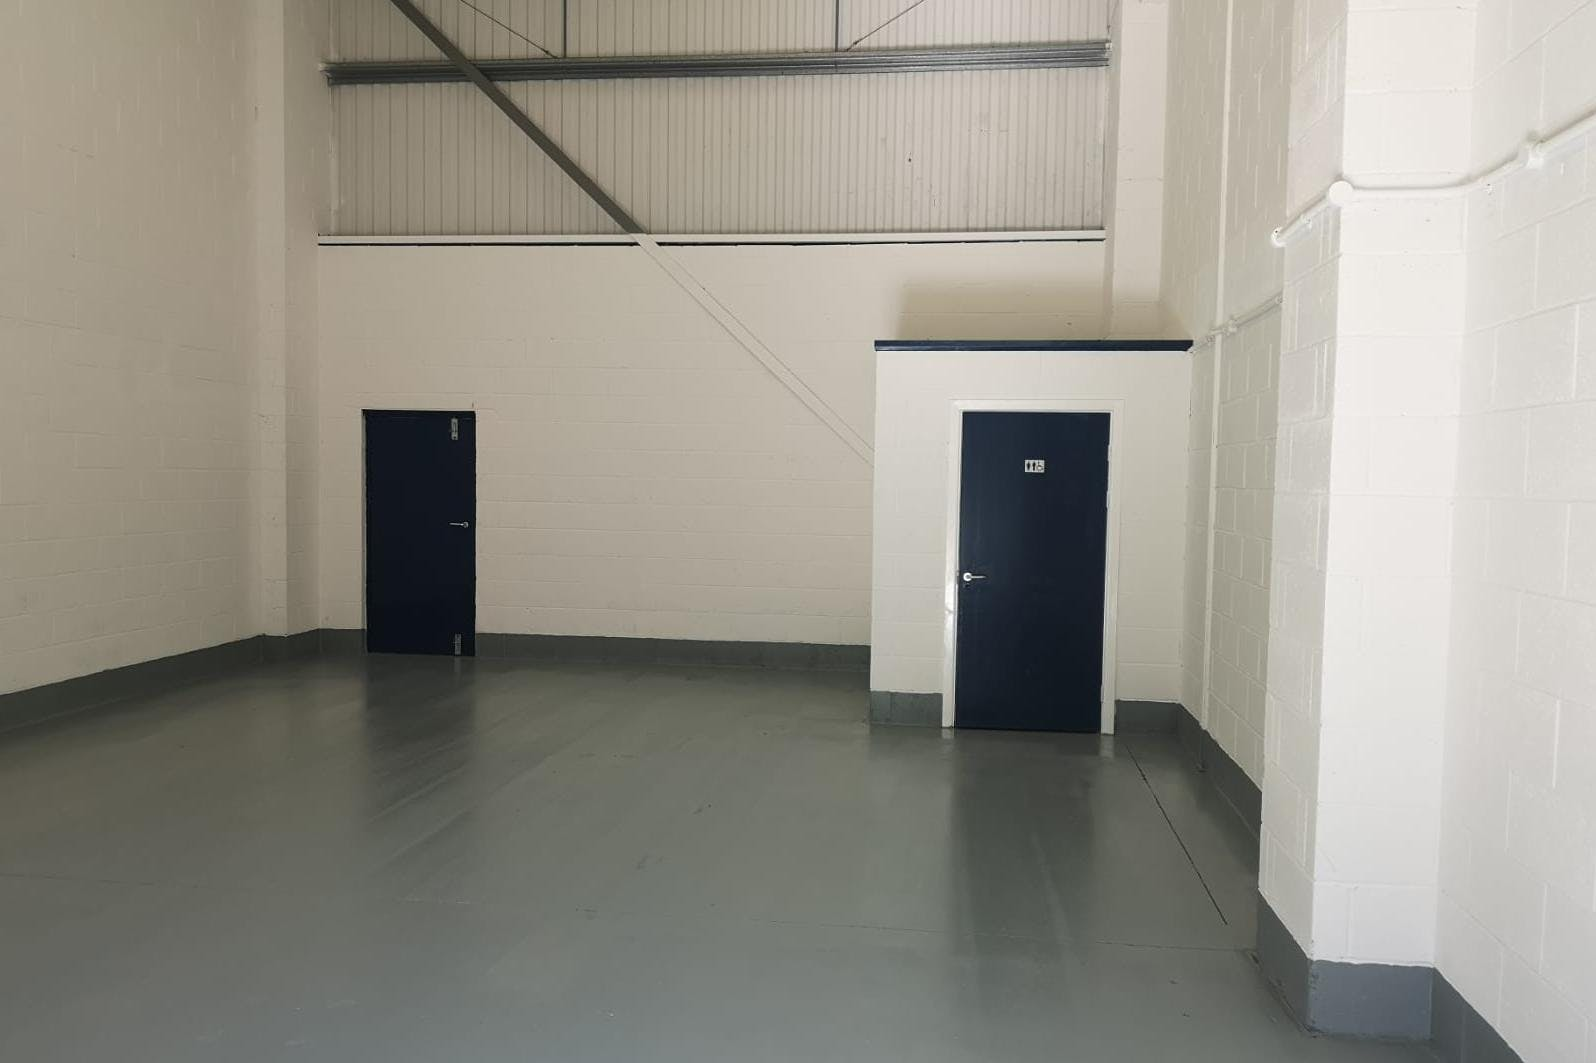 18 Helix Business Park, Wilton Road, Camberley, Warehouse & Industrial To Let - 5f878549-f1bf-4c47-bfe3-c1d167d26b0e (002).JPG